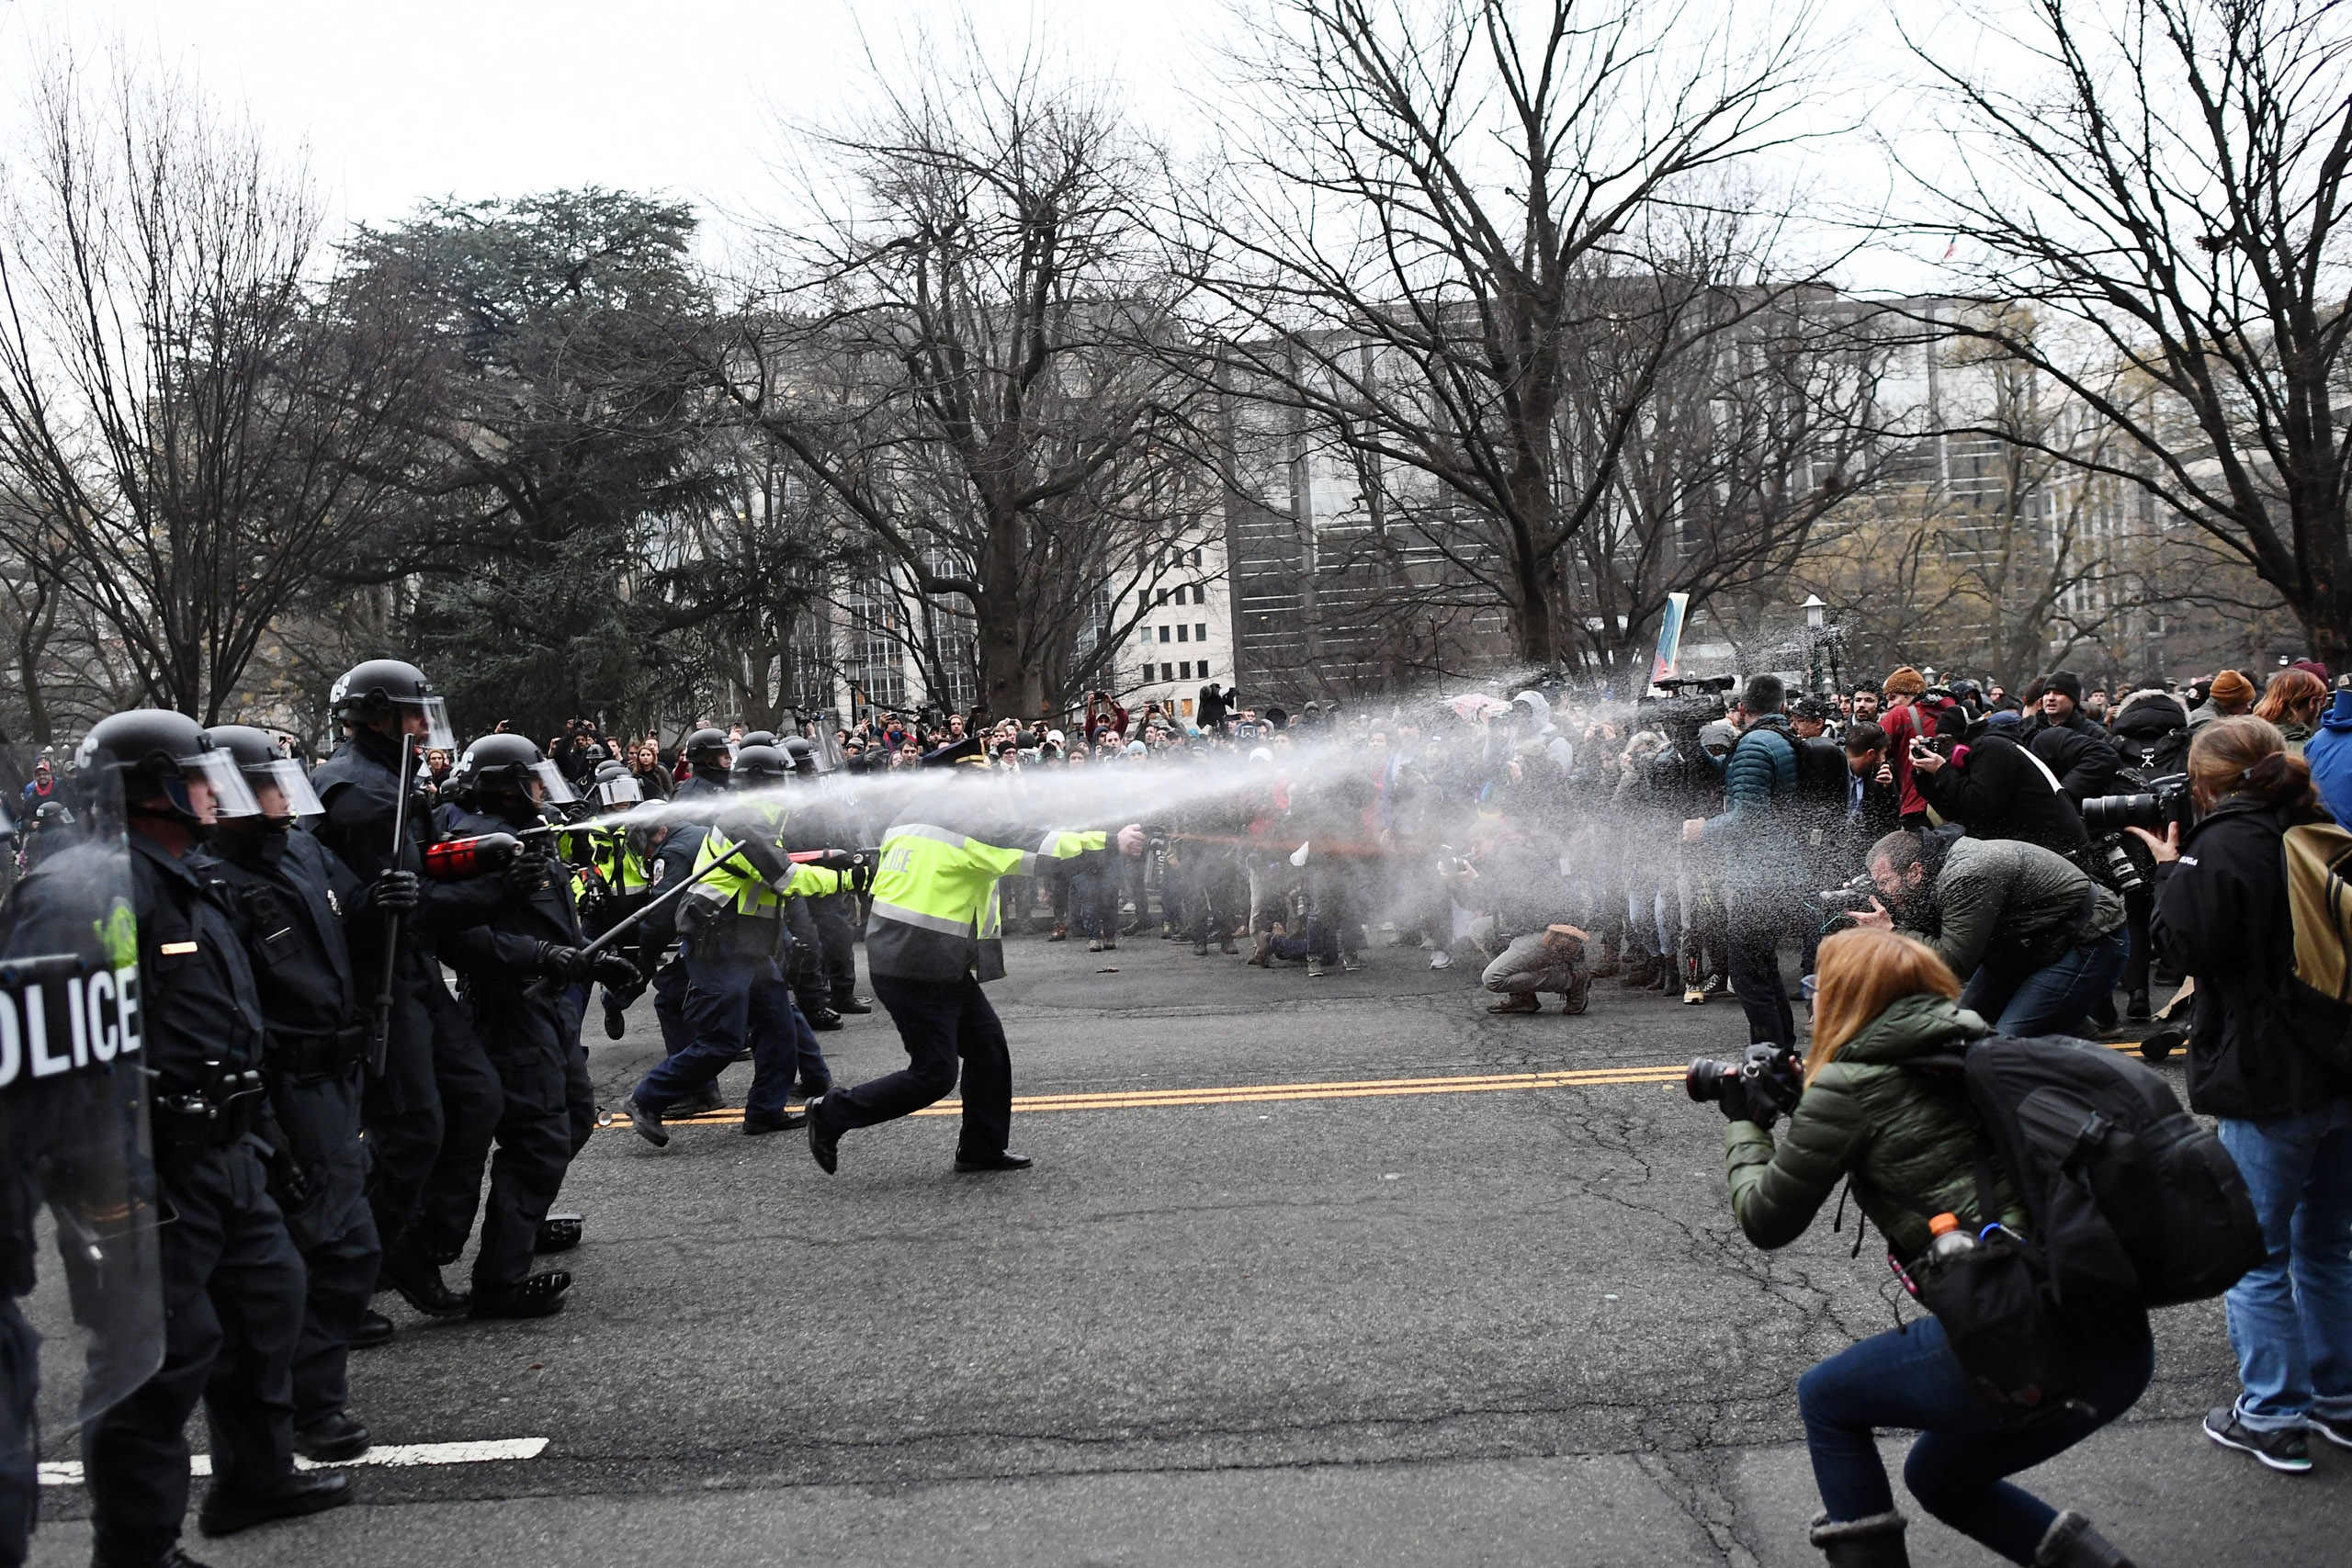 Police pepper spray at anti-Trump protesters in Washington, on Jan. 20, 2017.